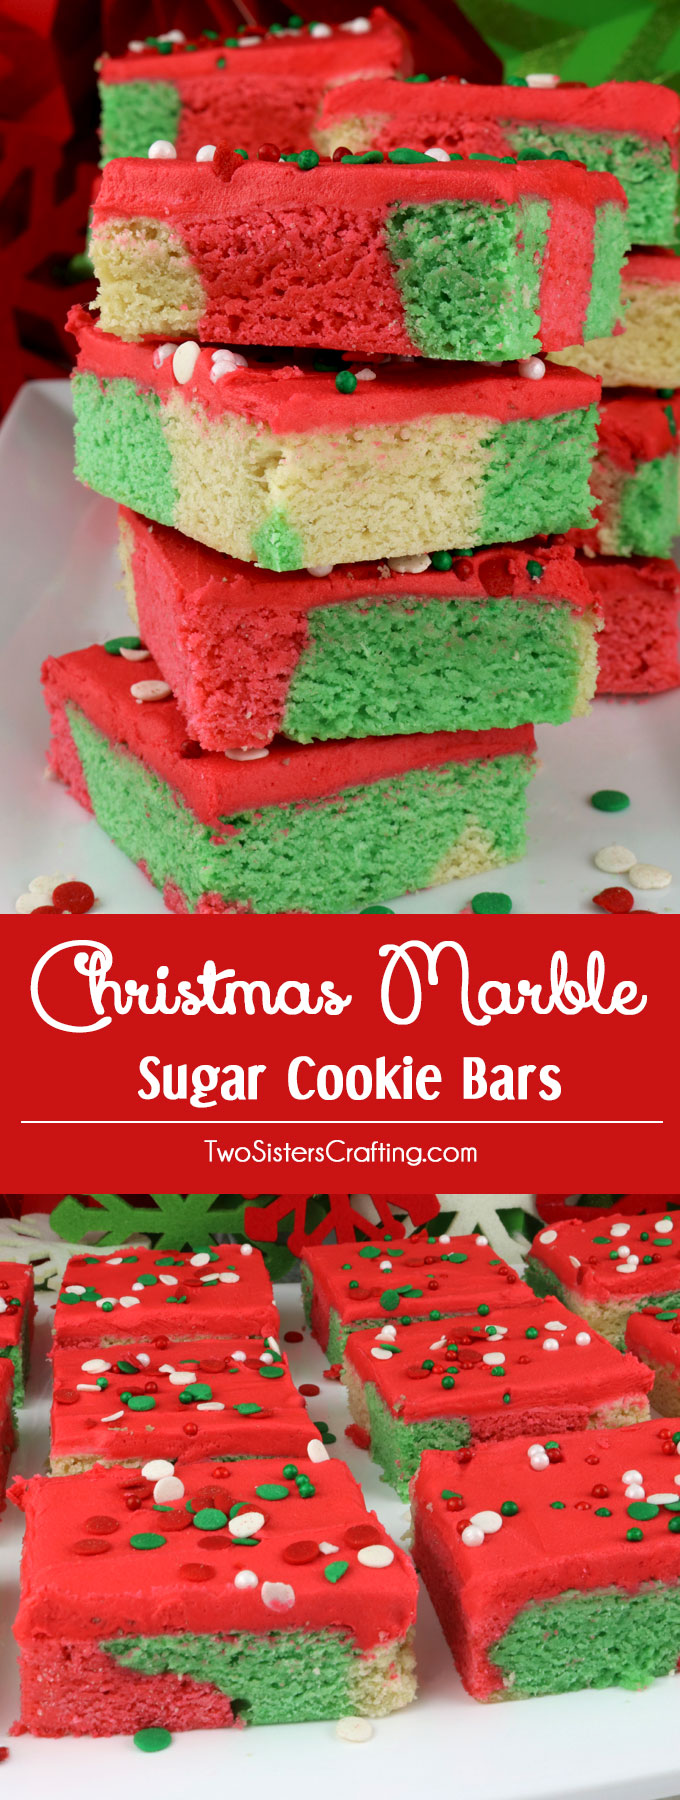 Christmas Marble Sugar Cookie Bars - Two Sisters Crafting